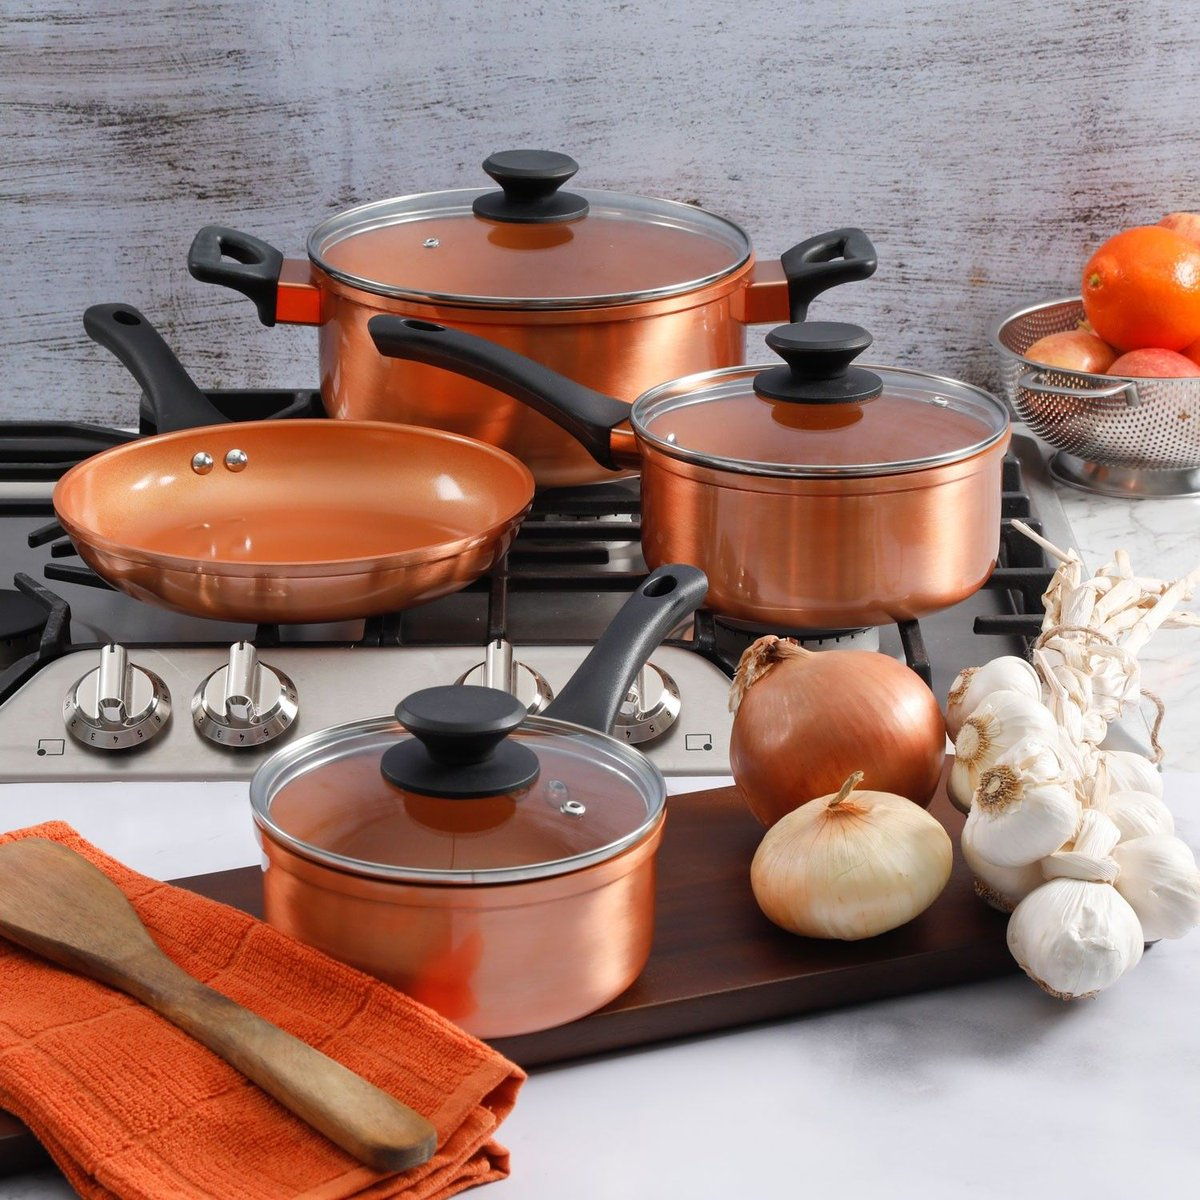 Peralatan Dapur Panci Set Vicenza V812 Cookware Daftar Harga 12pcs Gibson Outlet Get Cooking With The Sunbeam Larson 7 Piece Copper Available Now